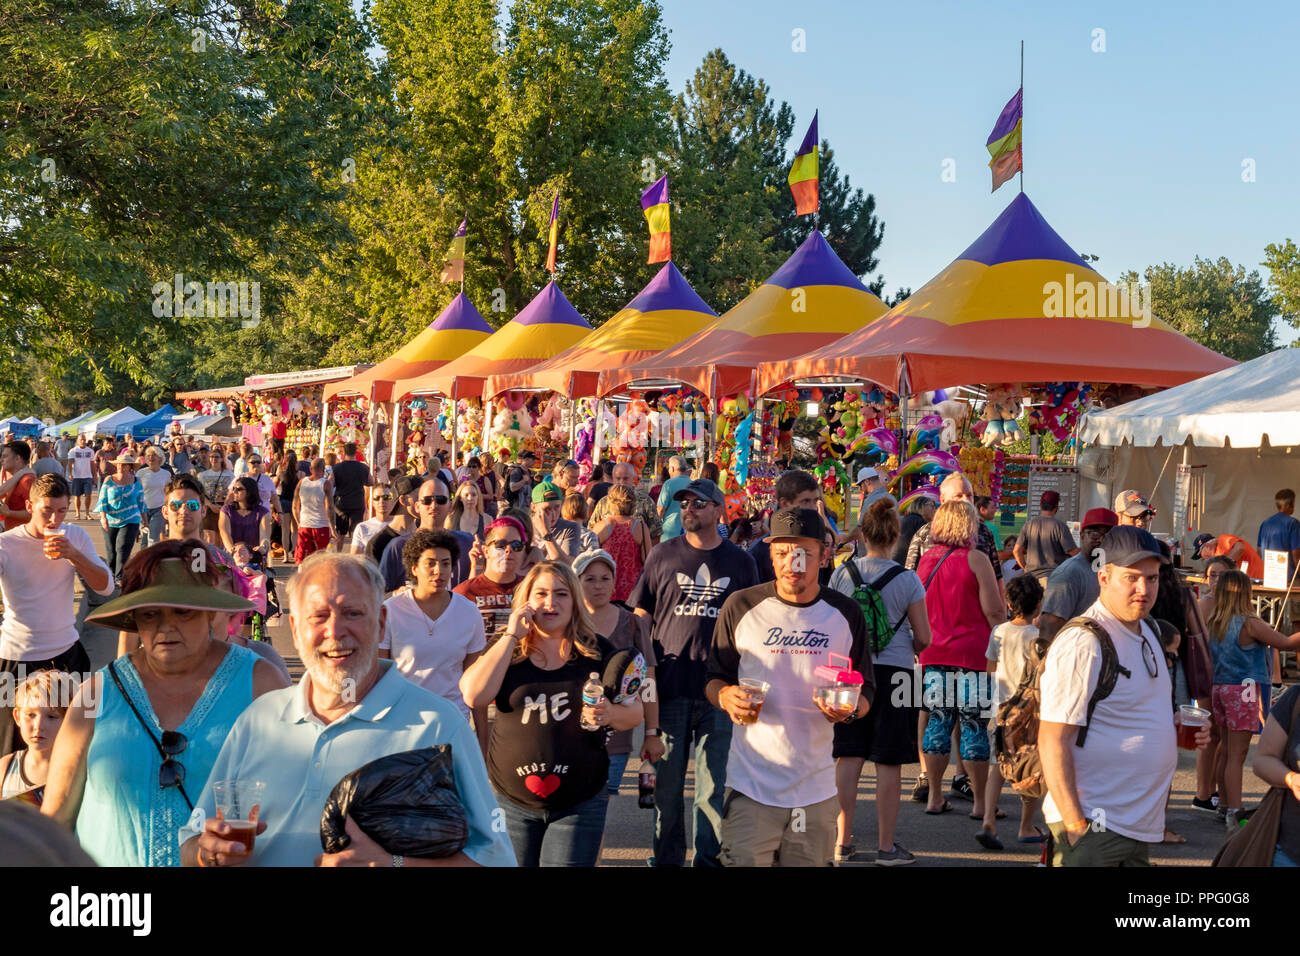 Wheat Ridge, Colorado - The annual Carnation Festival. The festival features food and entertainment. It was named for the flowers that were widely cul - Stock Image